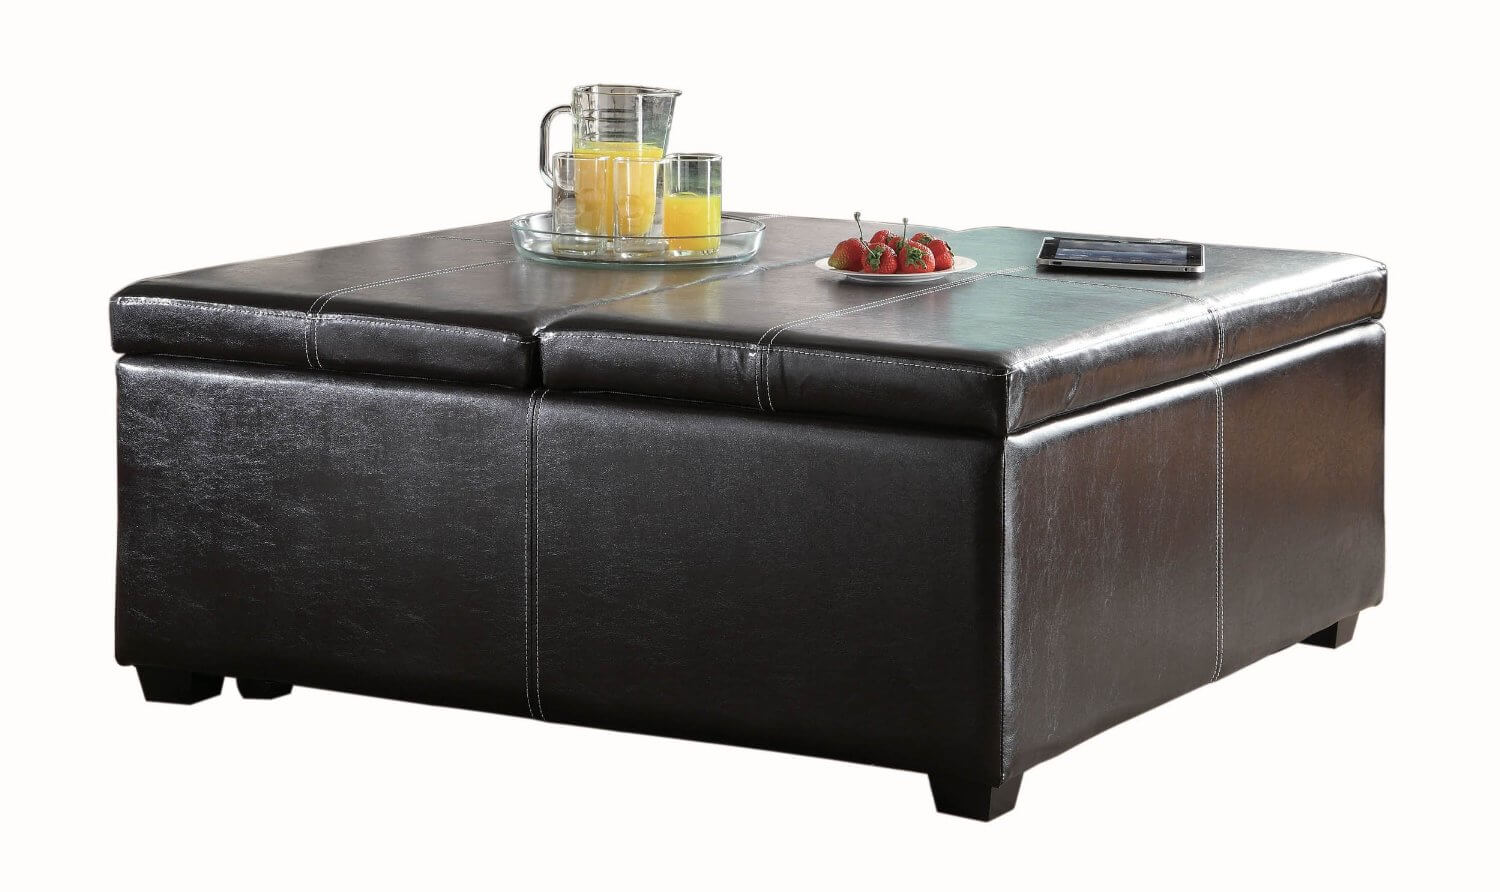 Brown leatherette ottoman features both lift-top lid on one side, for convenient reading or dining, and flip-top lid for storage access on opposite side.